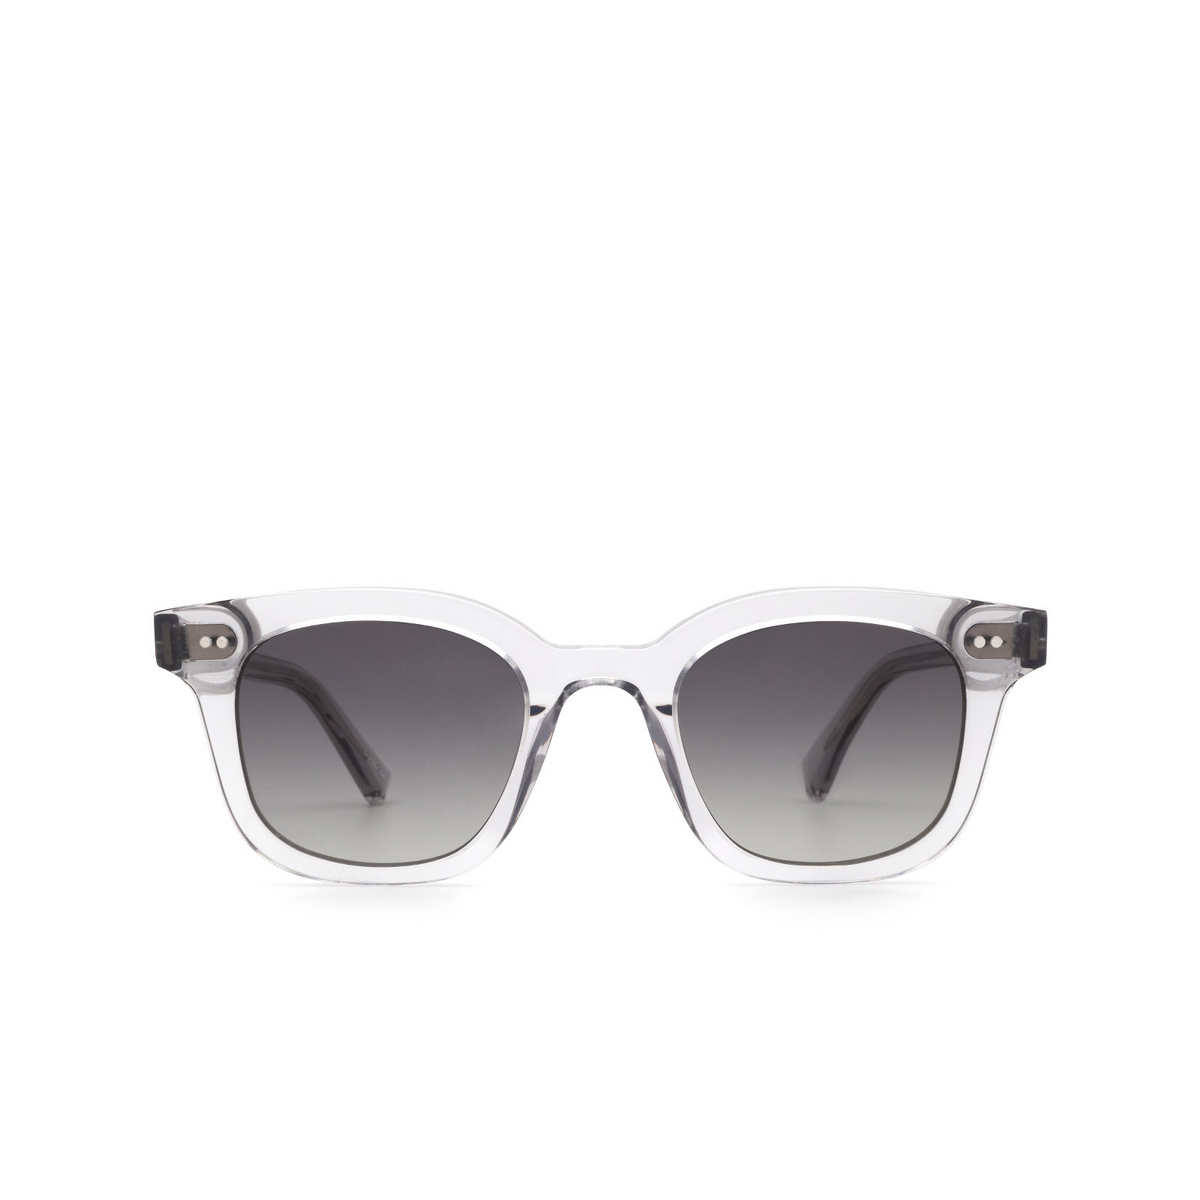 Chimi® Square Sunglasses: 02 color Grey - front view.